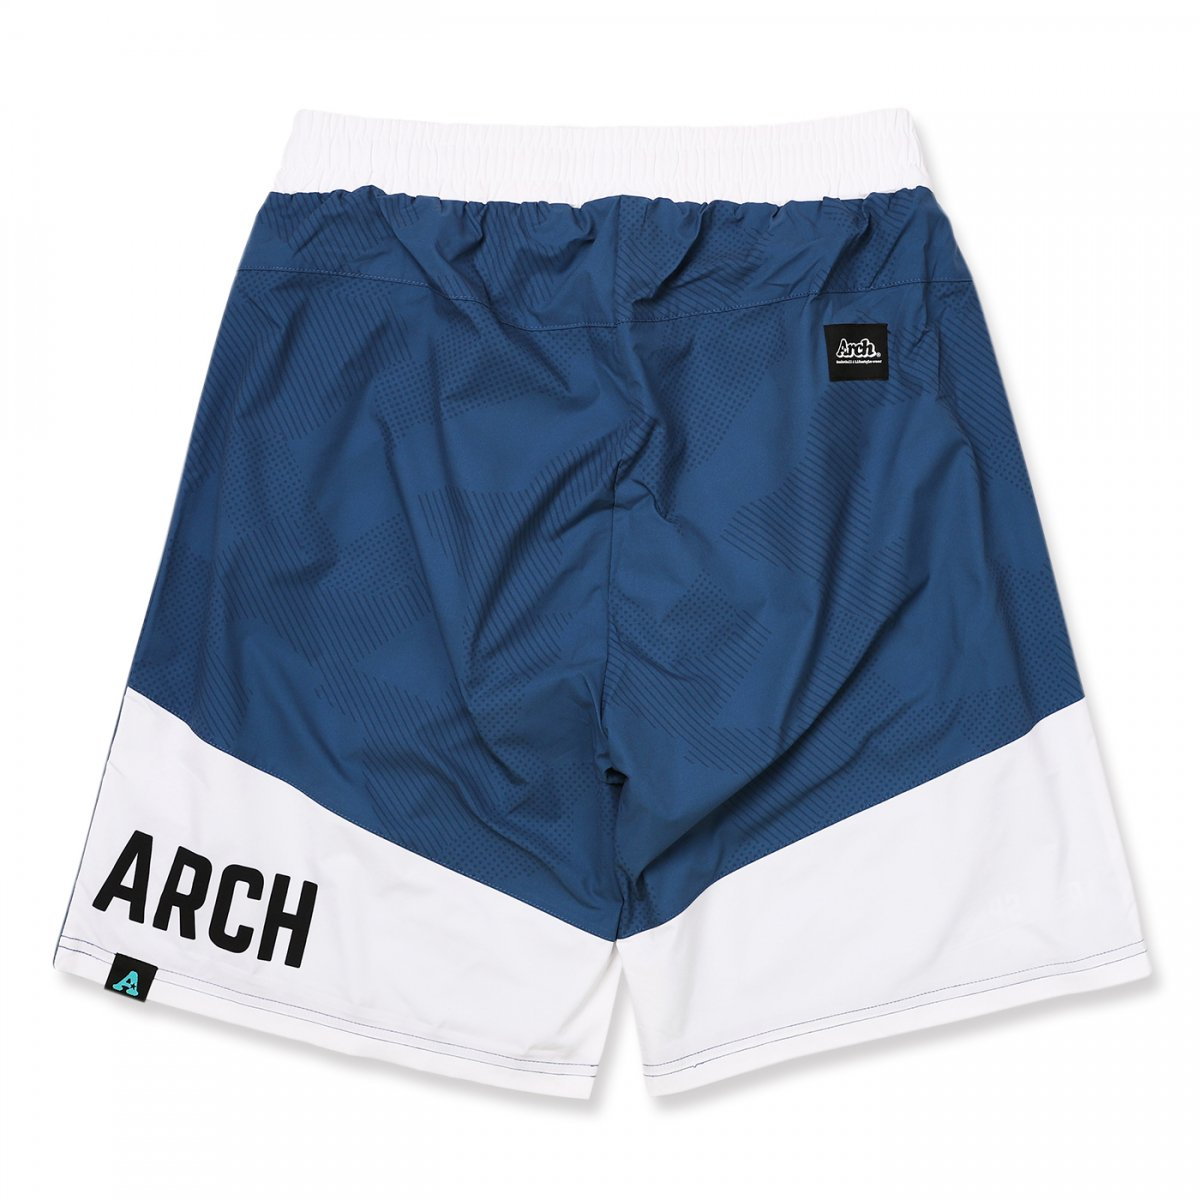 sport patched shorts 【navy blue】